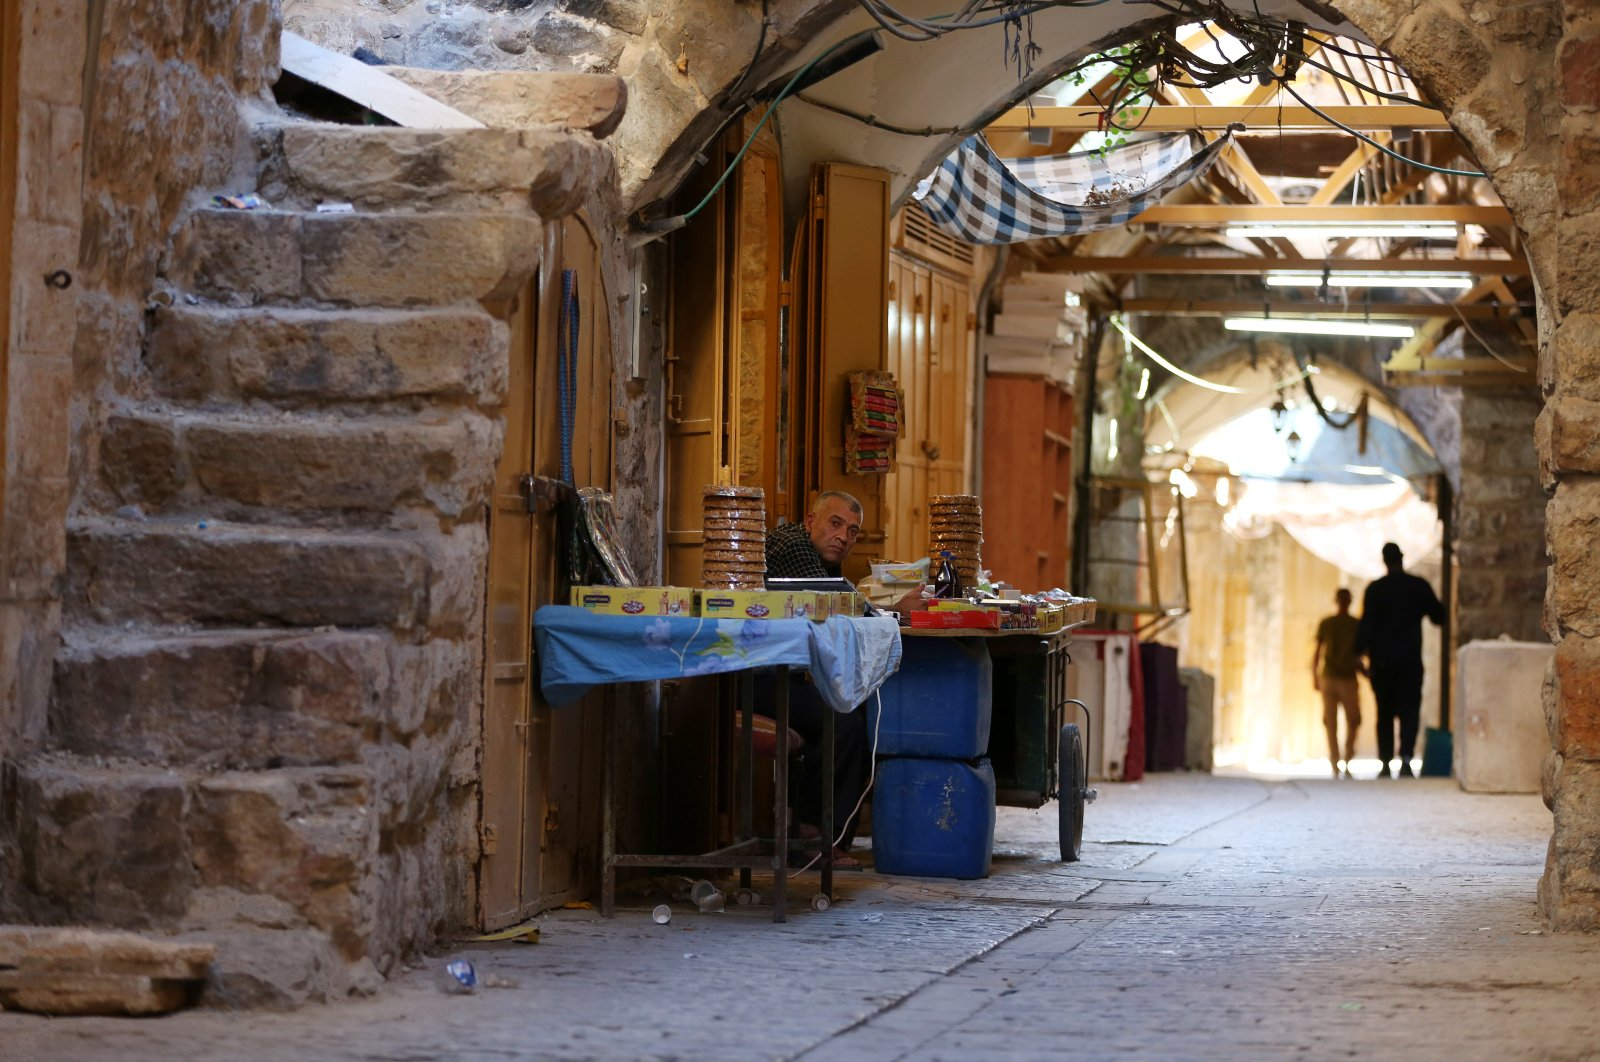 A view of people in one of the narrow streets in the Old City of Hebron in the West Bank, Palestine, Aug. 14, 2021. (EPA Photo)